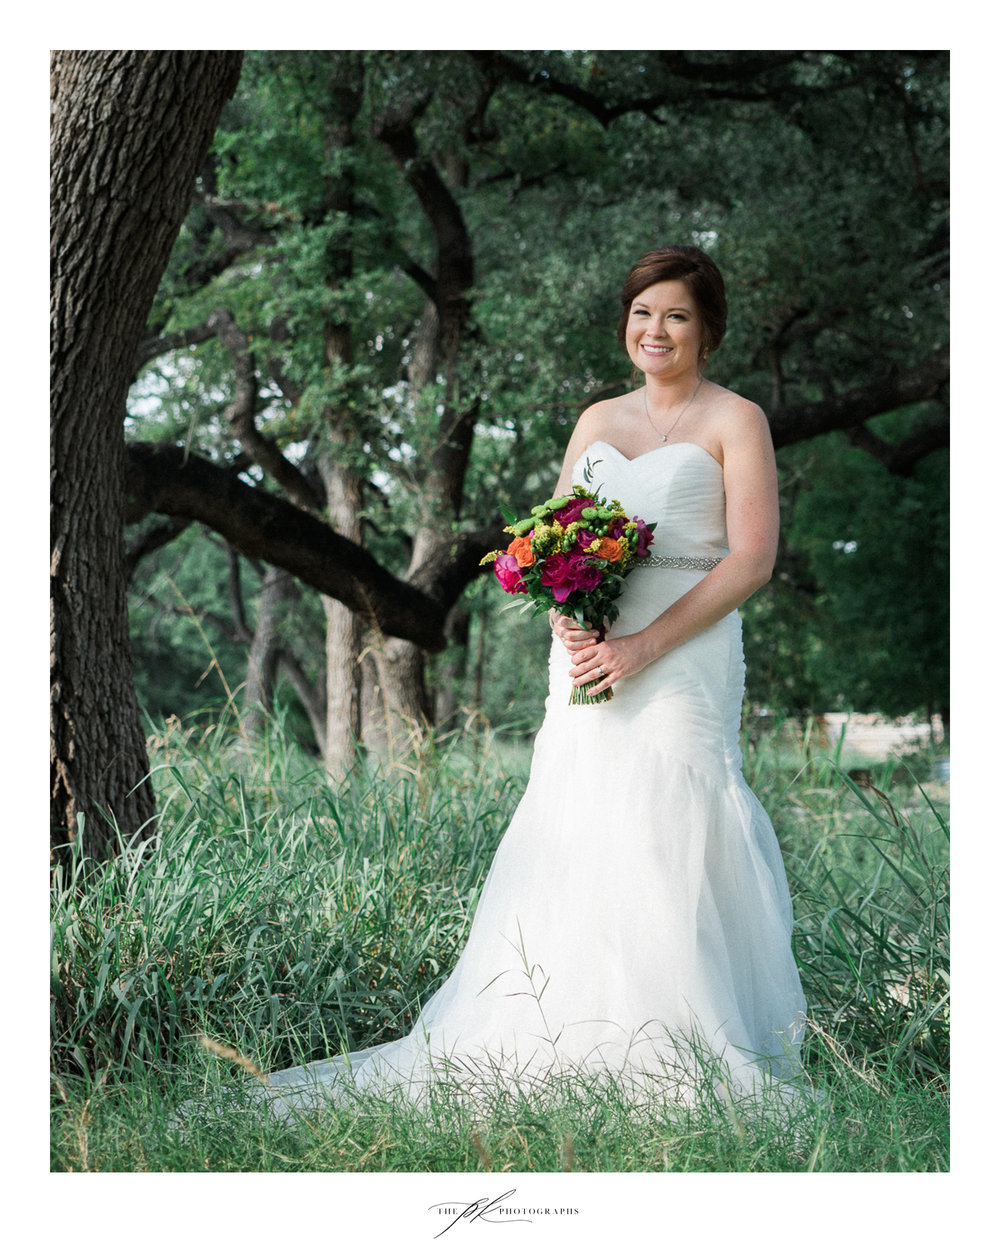 Katie at Magnolia Halle, a San Antonio wedding venue in the heart of the city.